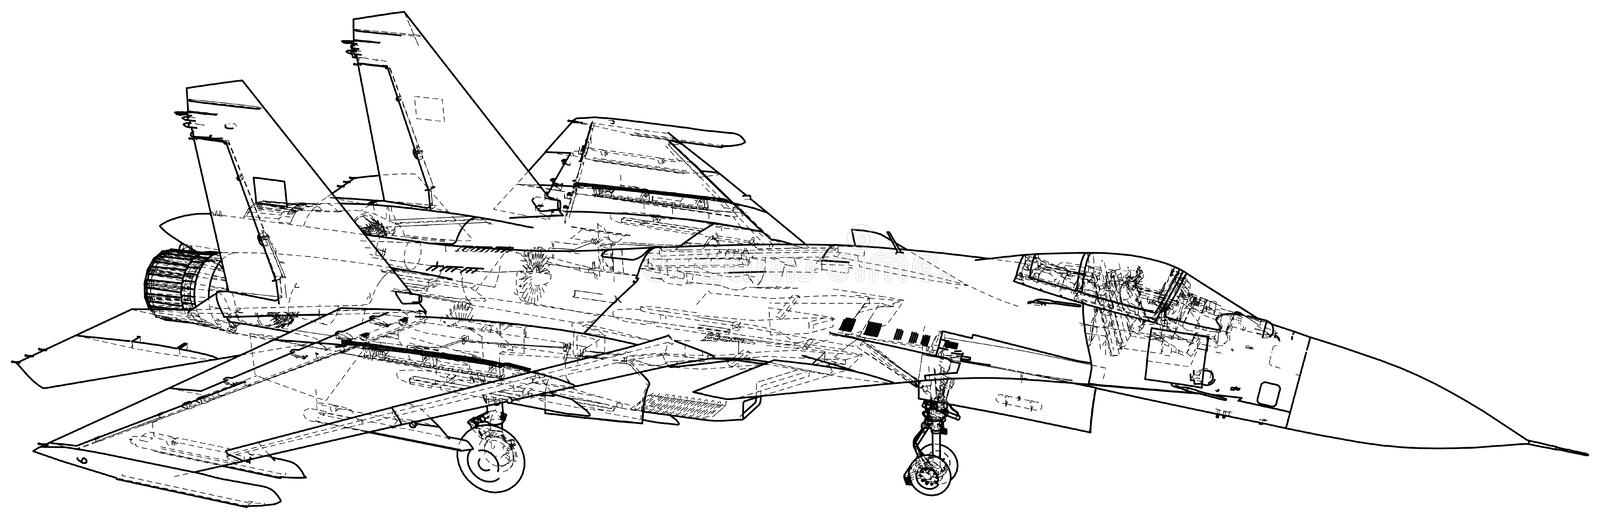 Jet fighter vector illustration. Military aircraft. Carrier-based aircraft. Modern supersonic fighter. Created royalty free illustration